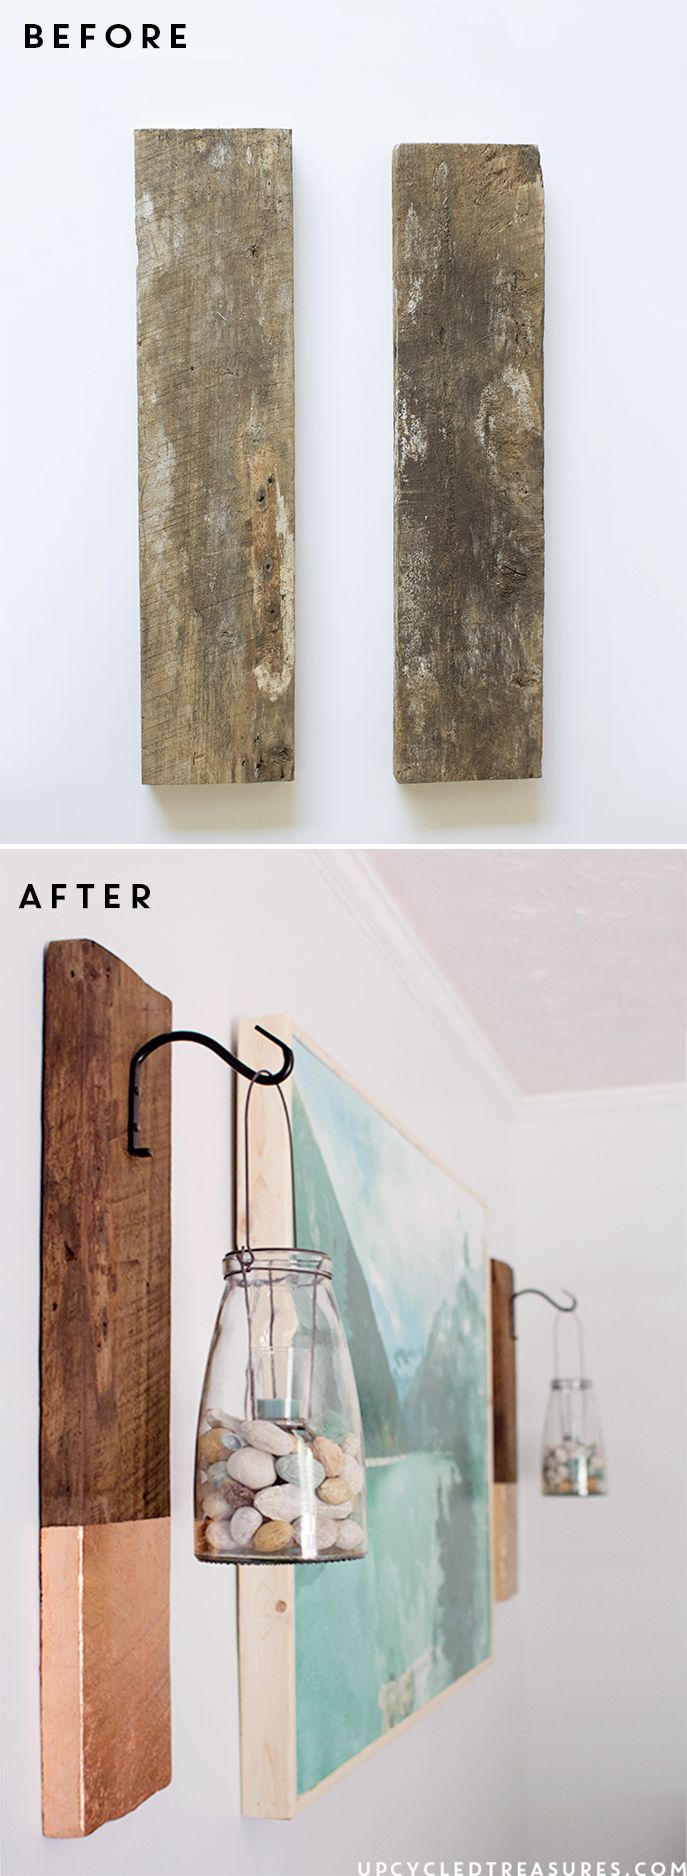 Bathroom wall decor ideas diy - How To Create A Modern Rustic Wall Hanging Rustic Modern Decor Diymodern